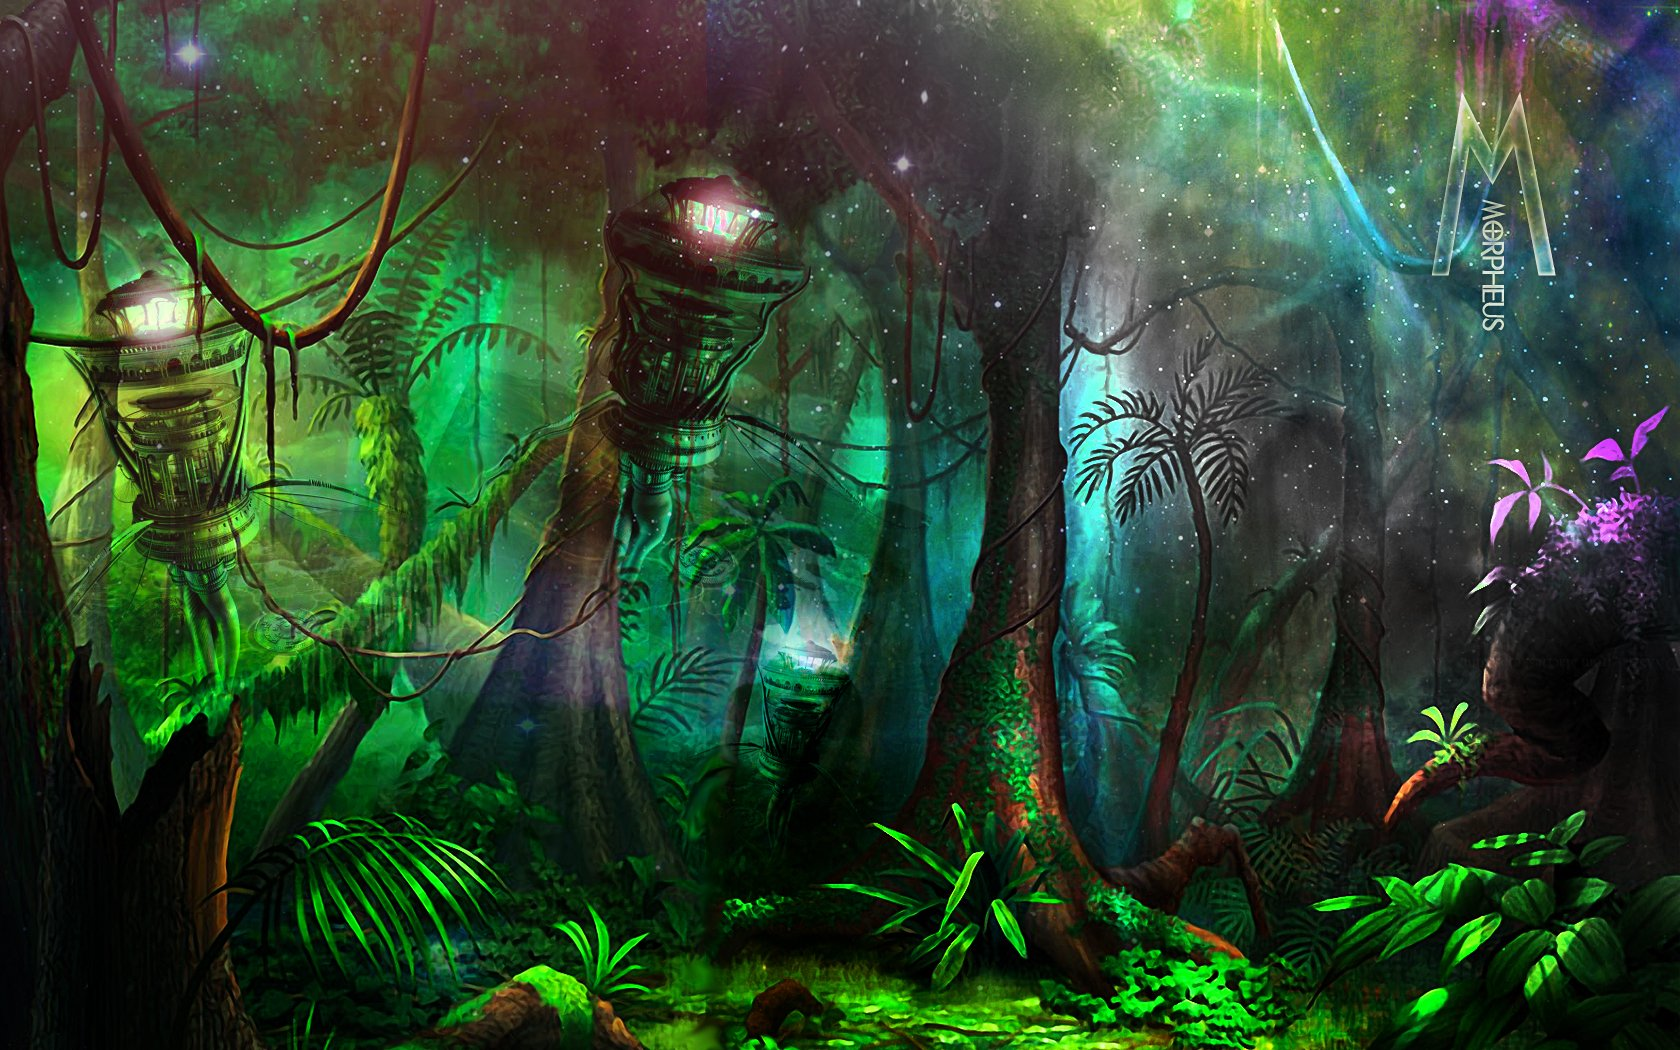 Artistic - Painting  Forest Wallpaper